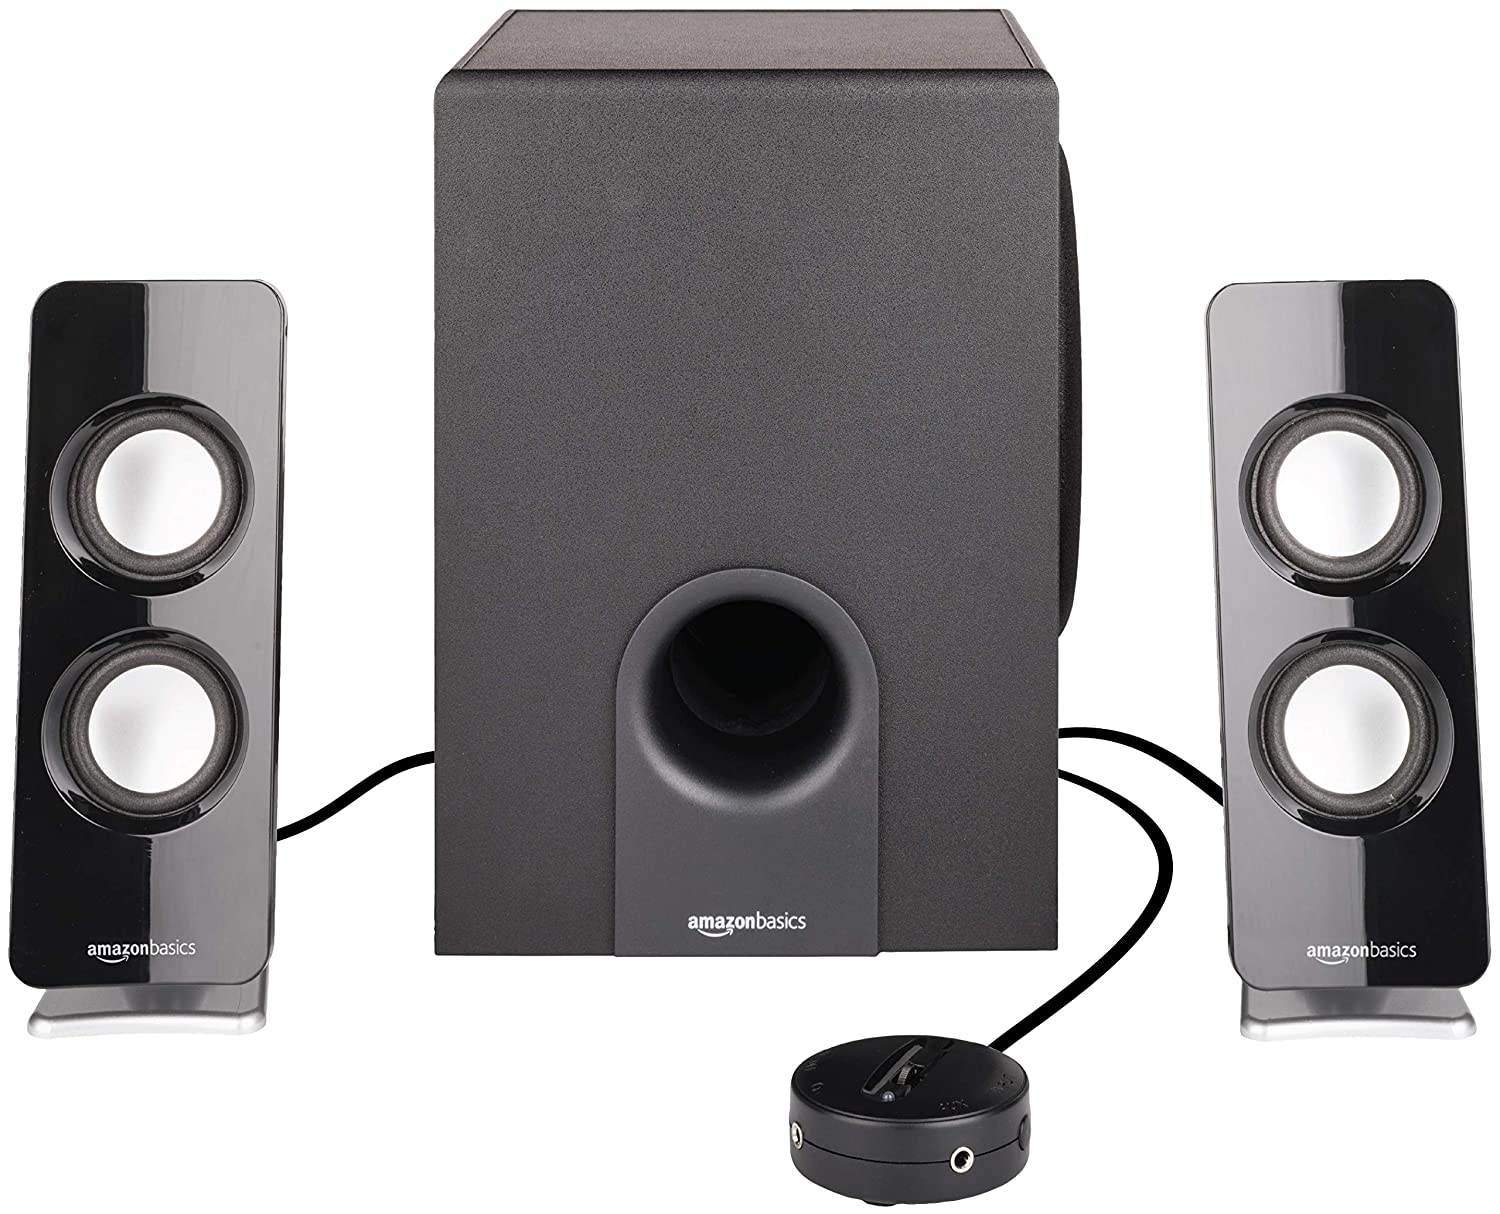 AmazonBasics AC Powered 2.1 30W Bluetooth Speakers with Subwoofer